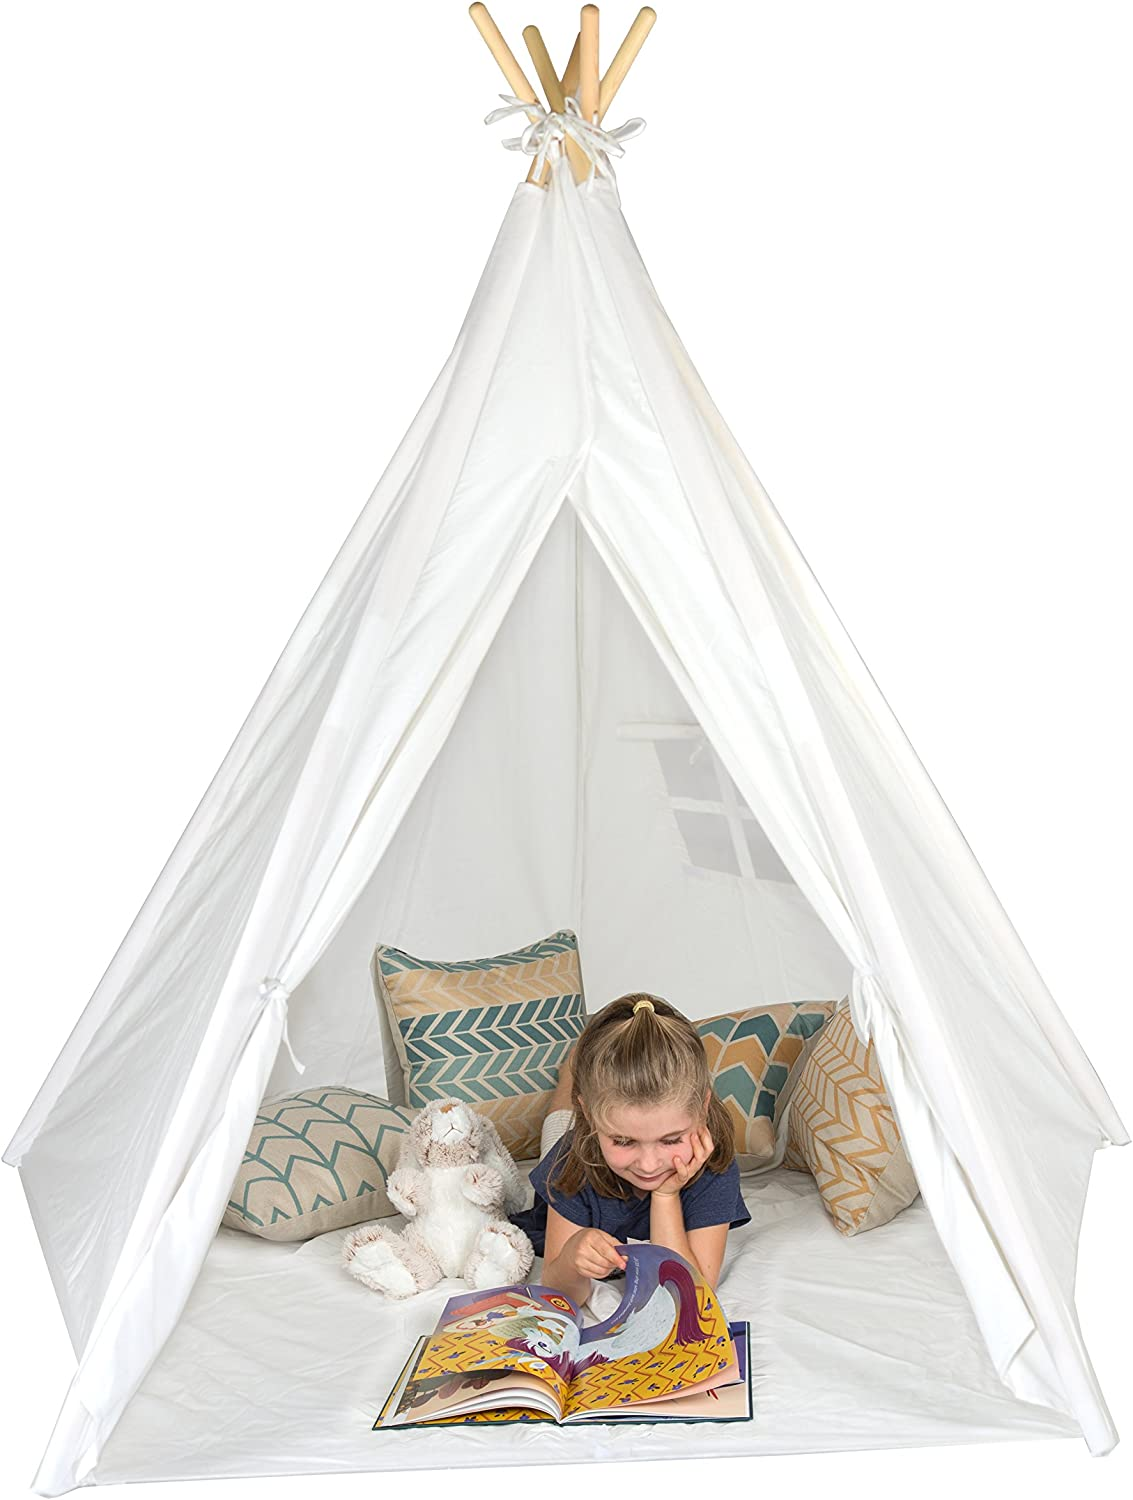 Top 15 Best Kids Teepee Tents (2020 Reviews & Buying Guide) 12